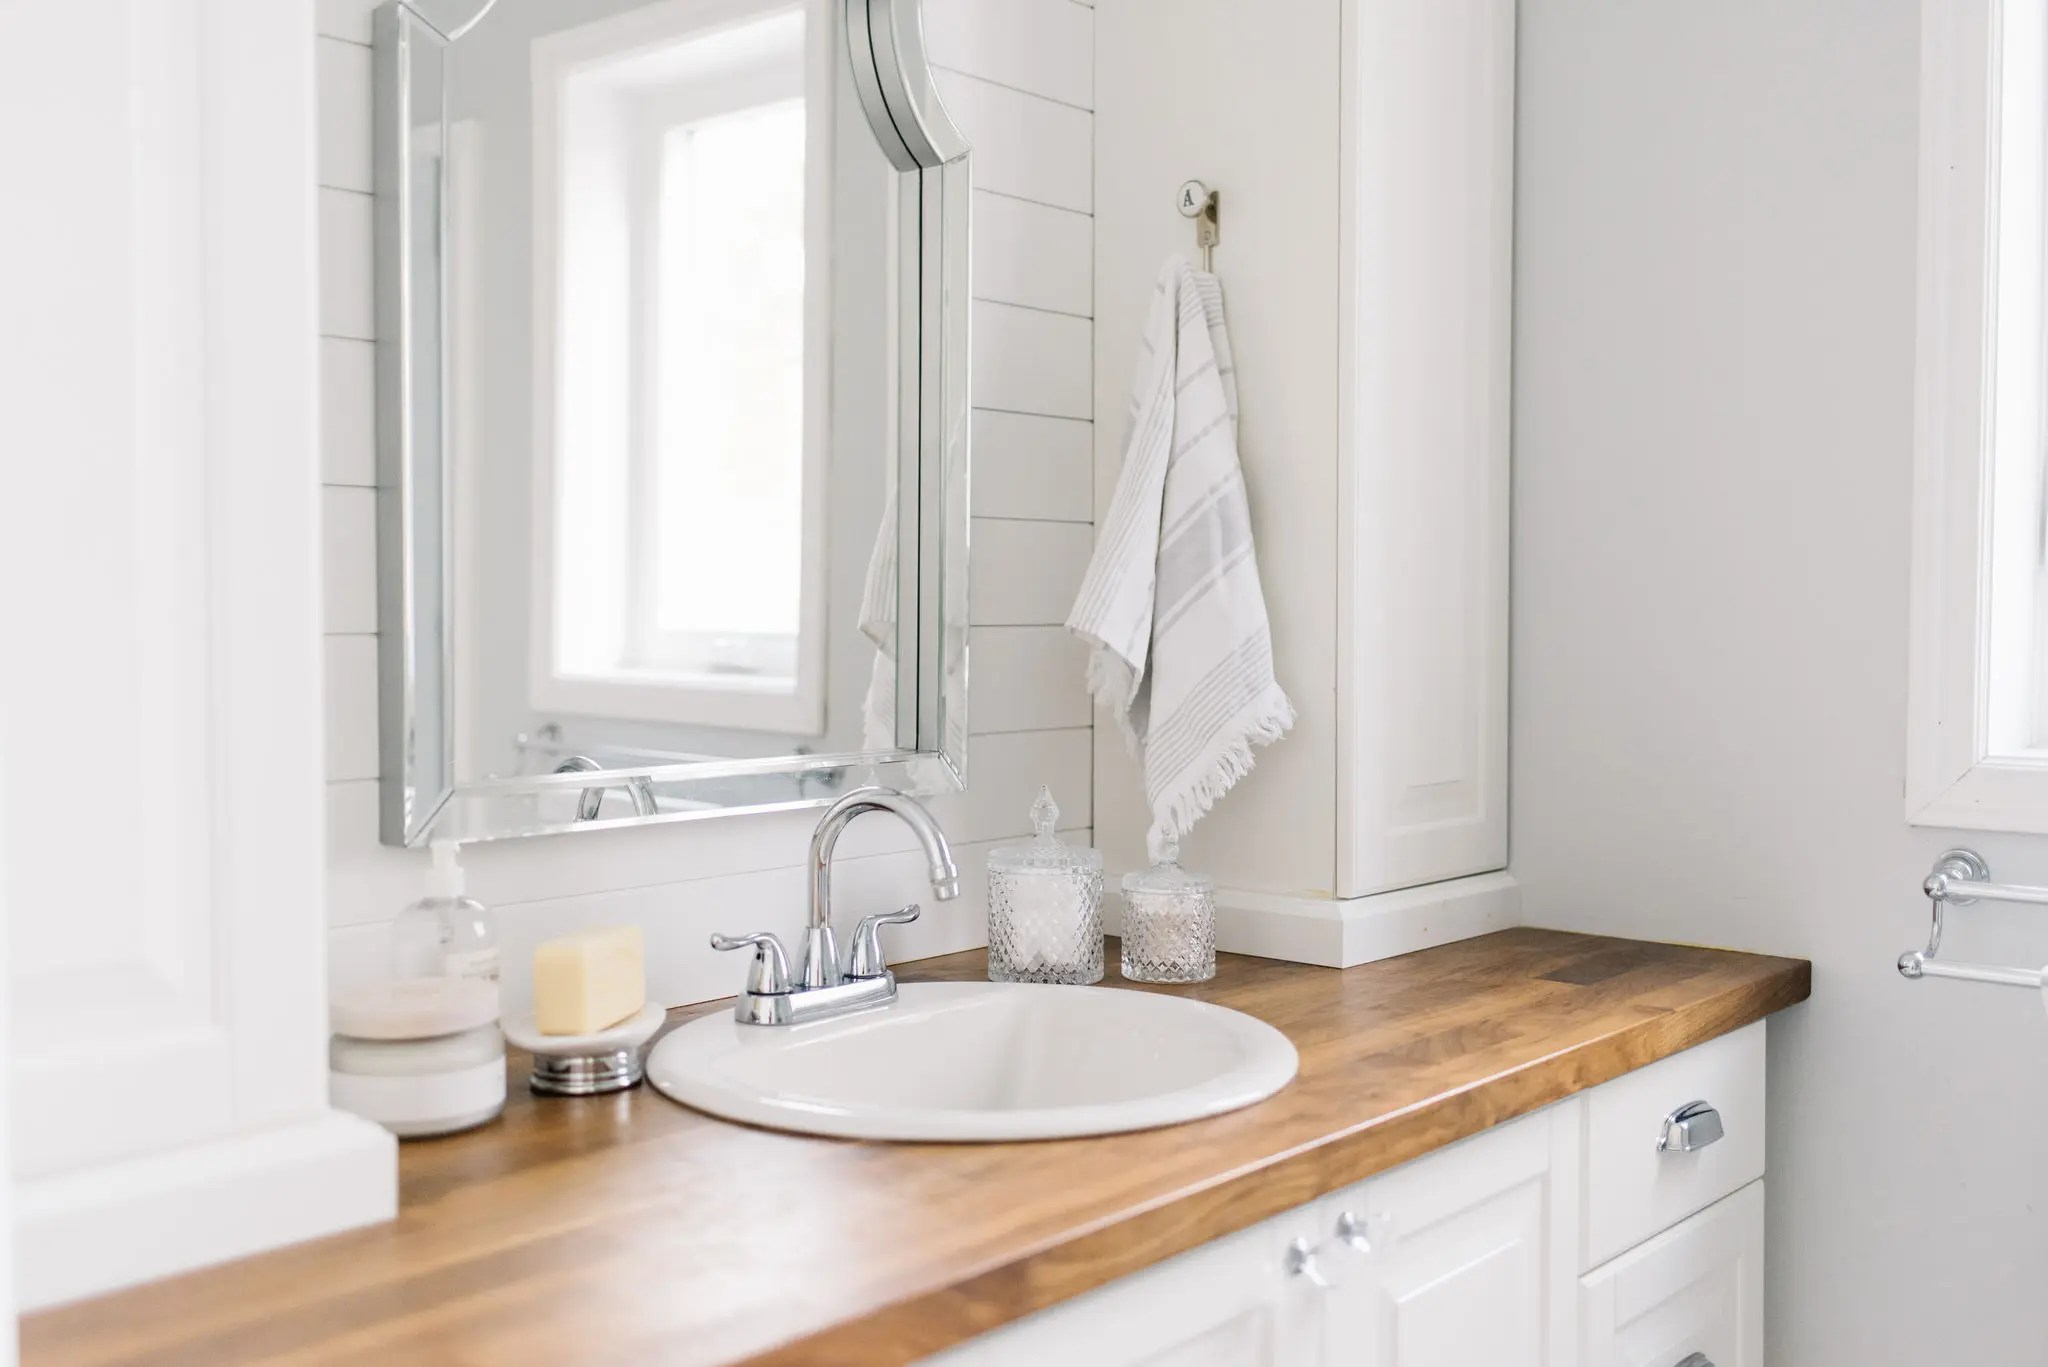 7 Tiny Master Bathroom Design Tips The Ginger Home